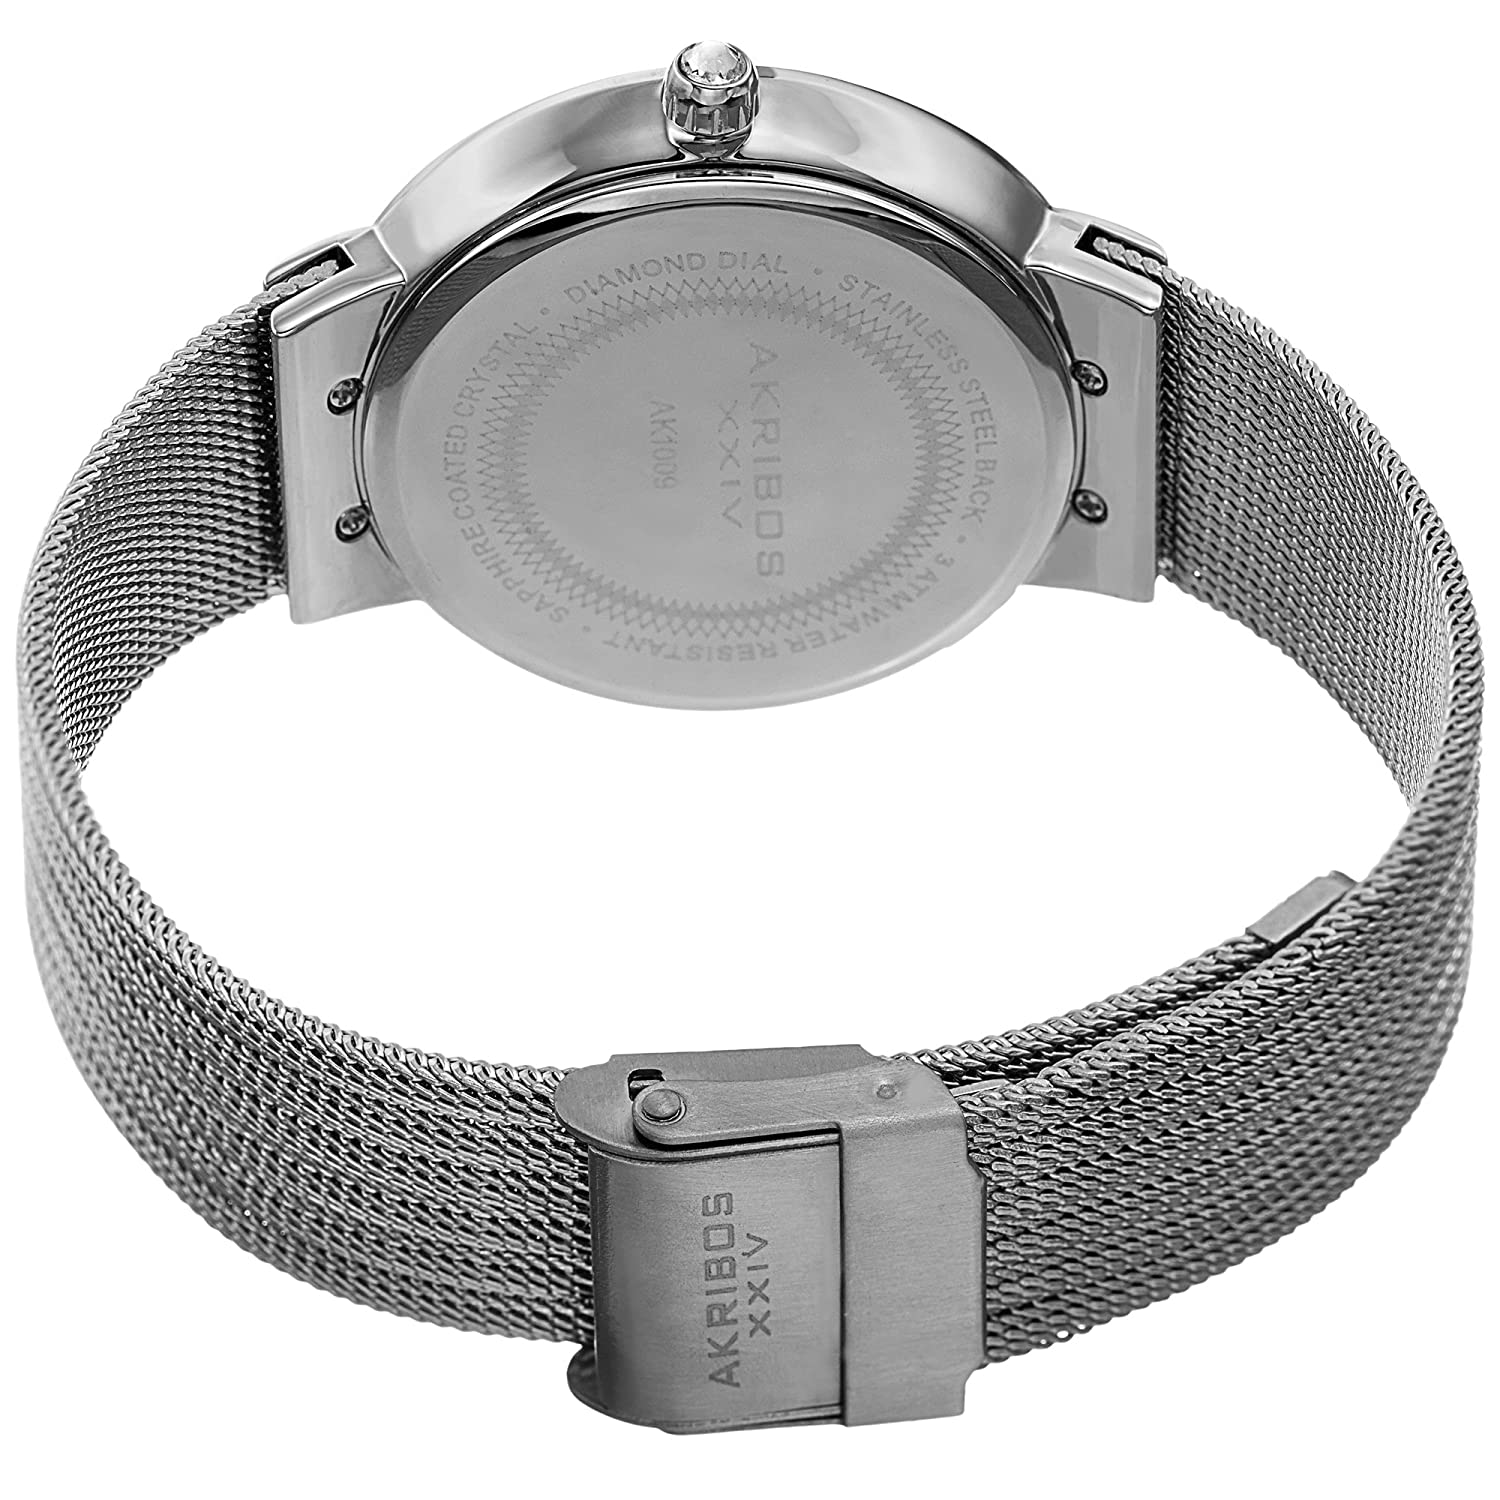 Amazon.com: Akribos XXIV Womens Quartz Diamond & Mother-of-Pearl Silver-Tone Fine Mesh Bracelet Watch - AK1009SS: Watches